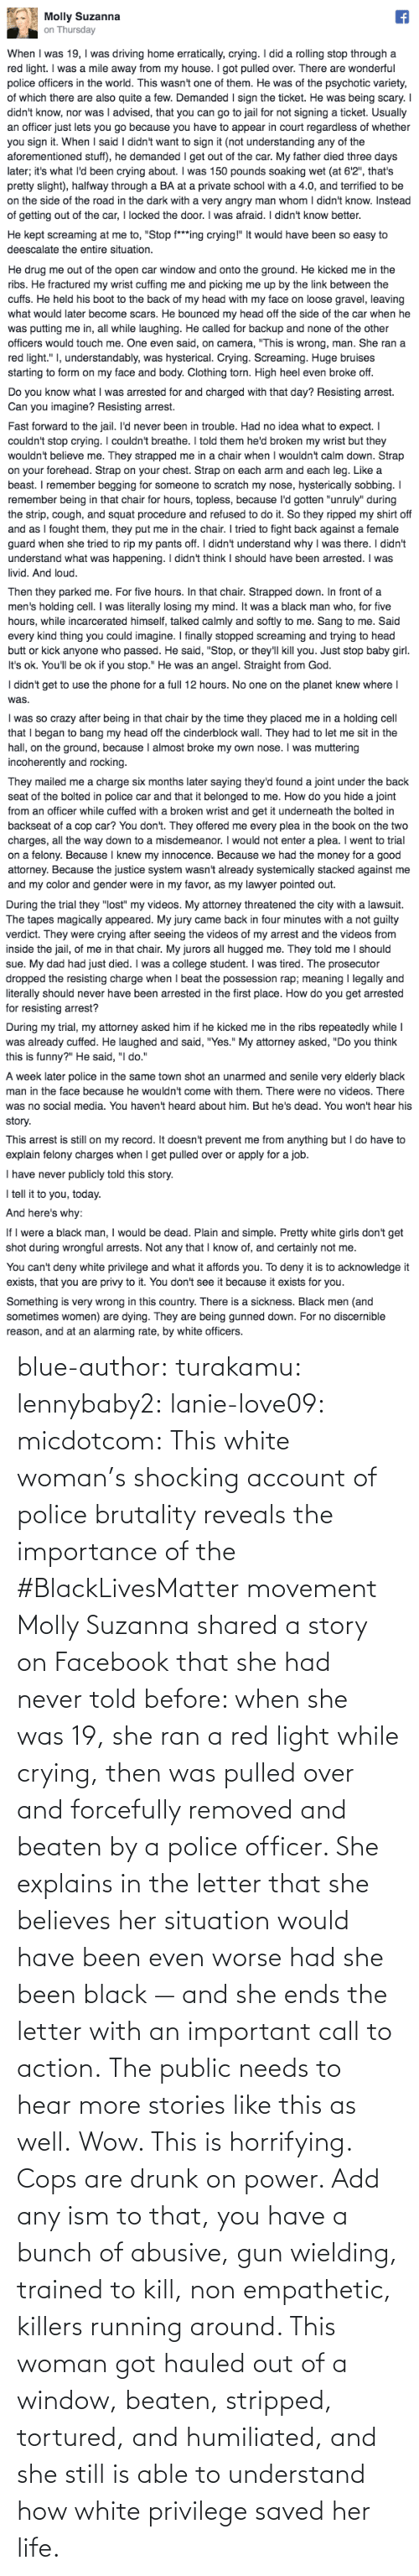 Important: blue-author: turakamu:  lennybaby2:  lanie-love09:  micdotcom:  This white woman's shocking account of police brutality reveals the importance of the #BlackLivesMatter movement Molly Suzanna shared a story on Facebook that she had never told before: when she was 19, she ran a red light while crying, then was pulled over and forcefully removed and beaten by a police officer. She explains in the letter that she believes her situation would have been even worse had she been black — and she ends the letter with an important call to action.  The public needs to hear more stories like this as well.  Wow. This is horrifying.  Cops are drunk on power. Add any ism to that, you have a bunch of abusive, gun wielding, trained to kill, non empathetic, killers running around.    This woman got hauled out of a window, beaten, stripped, tortured, and humiliated, and she still is able to understand how white privilege saved her life.